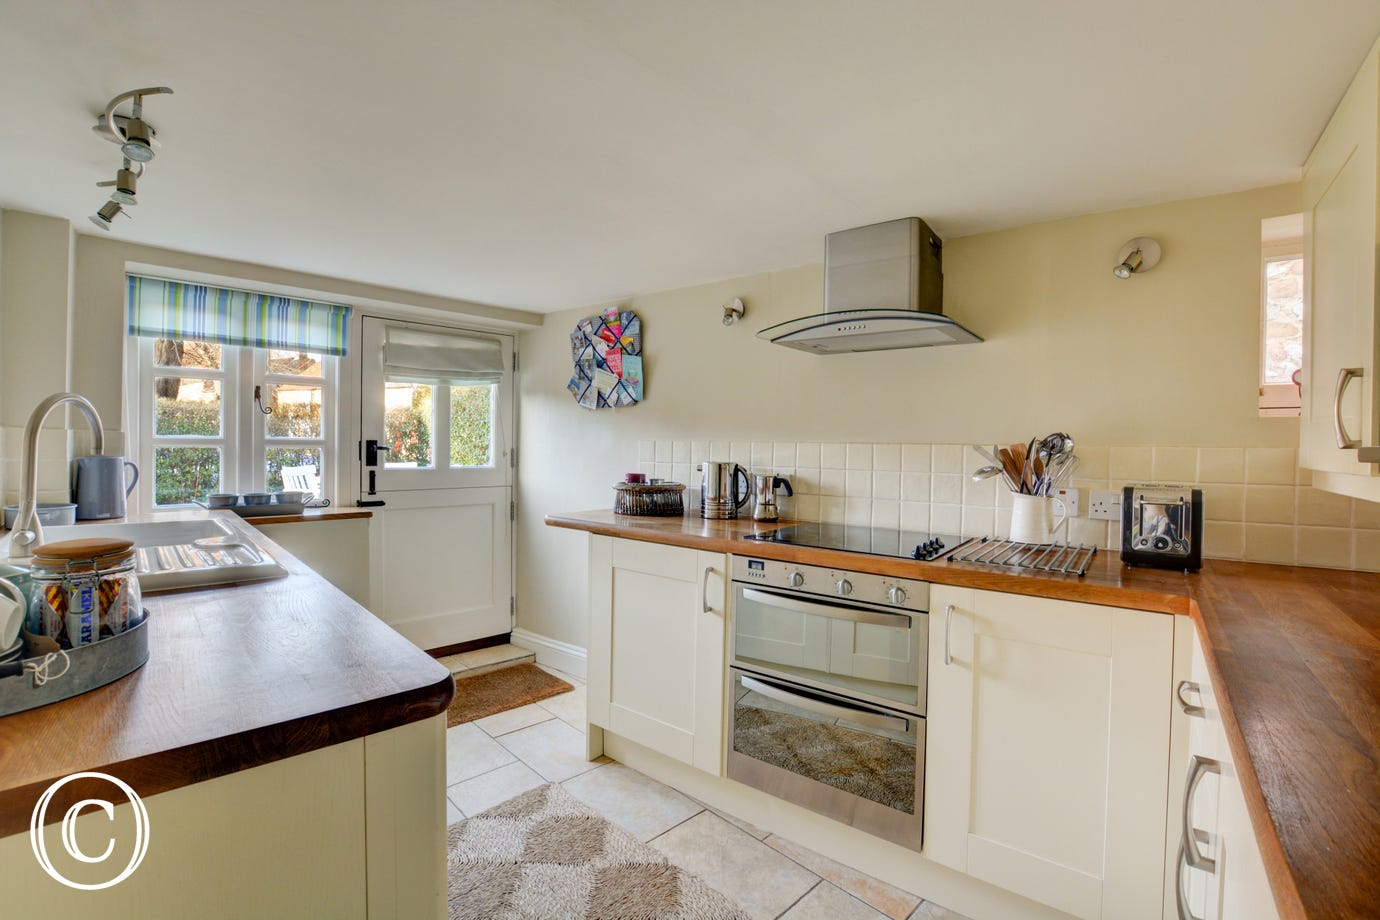 Well equipped, bright and airy kitchen